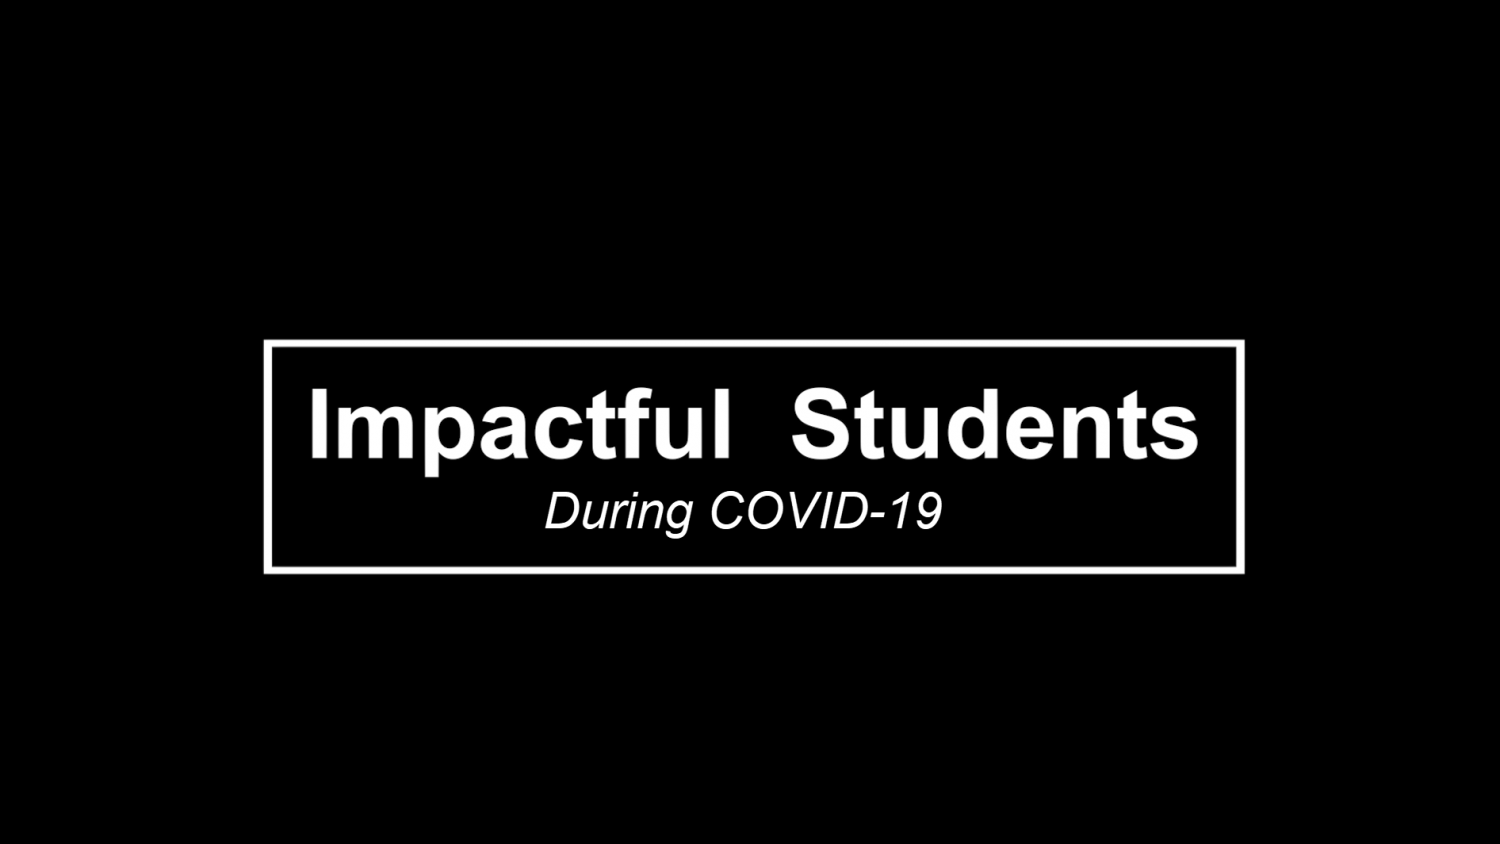 Impactful Students During COVID-19